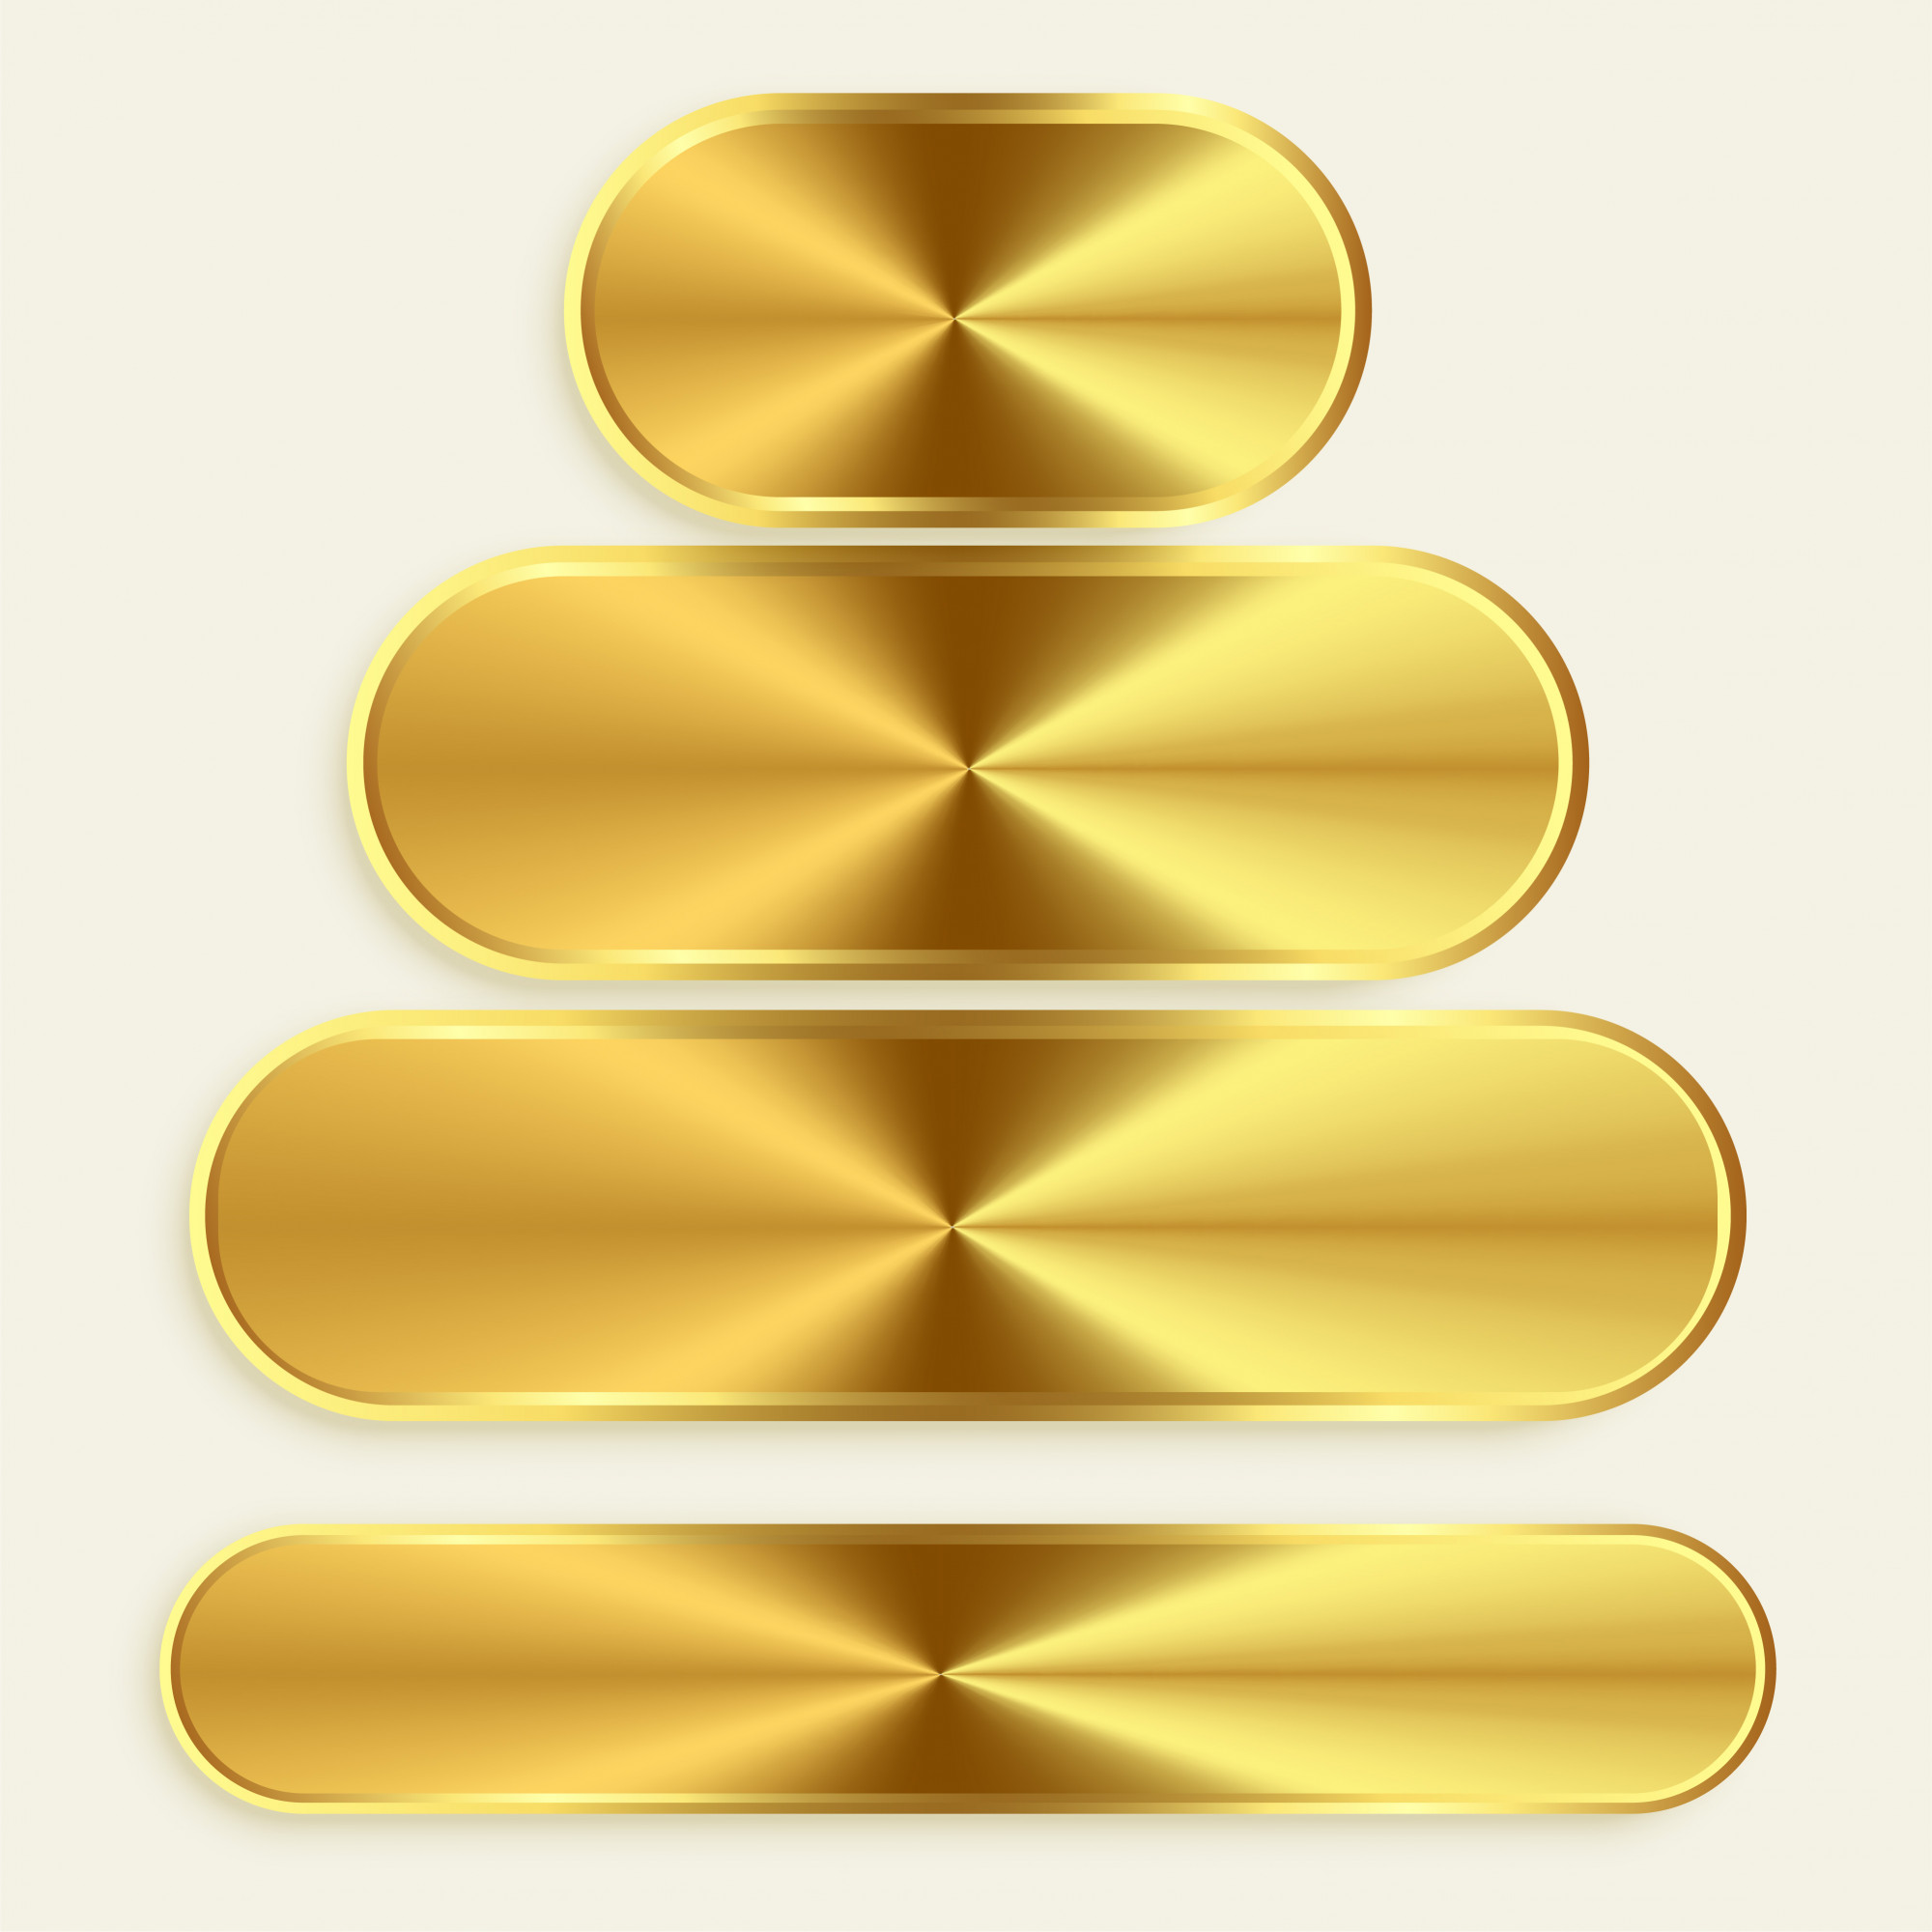 Golden metallic buttons in different sizes